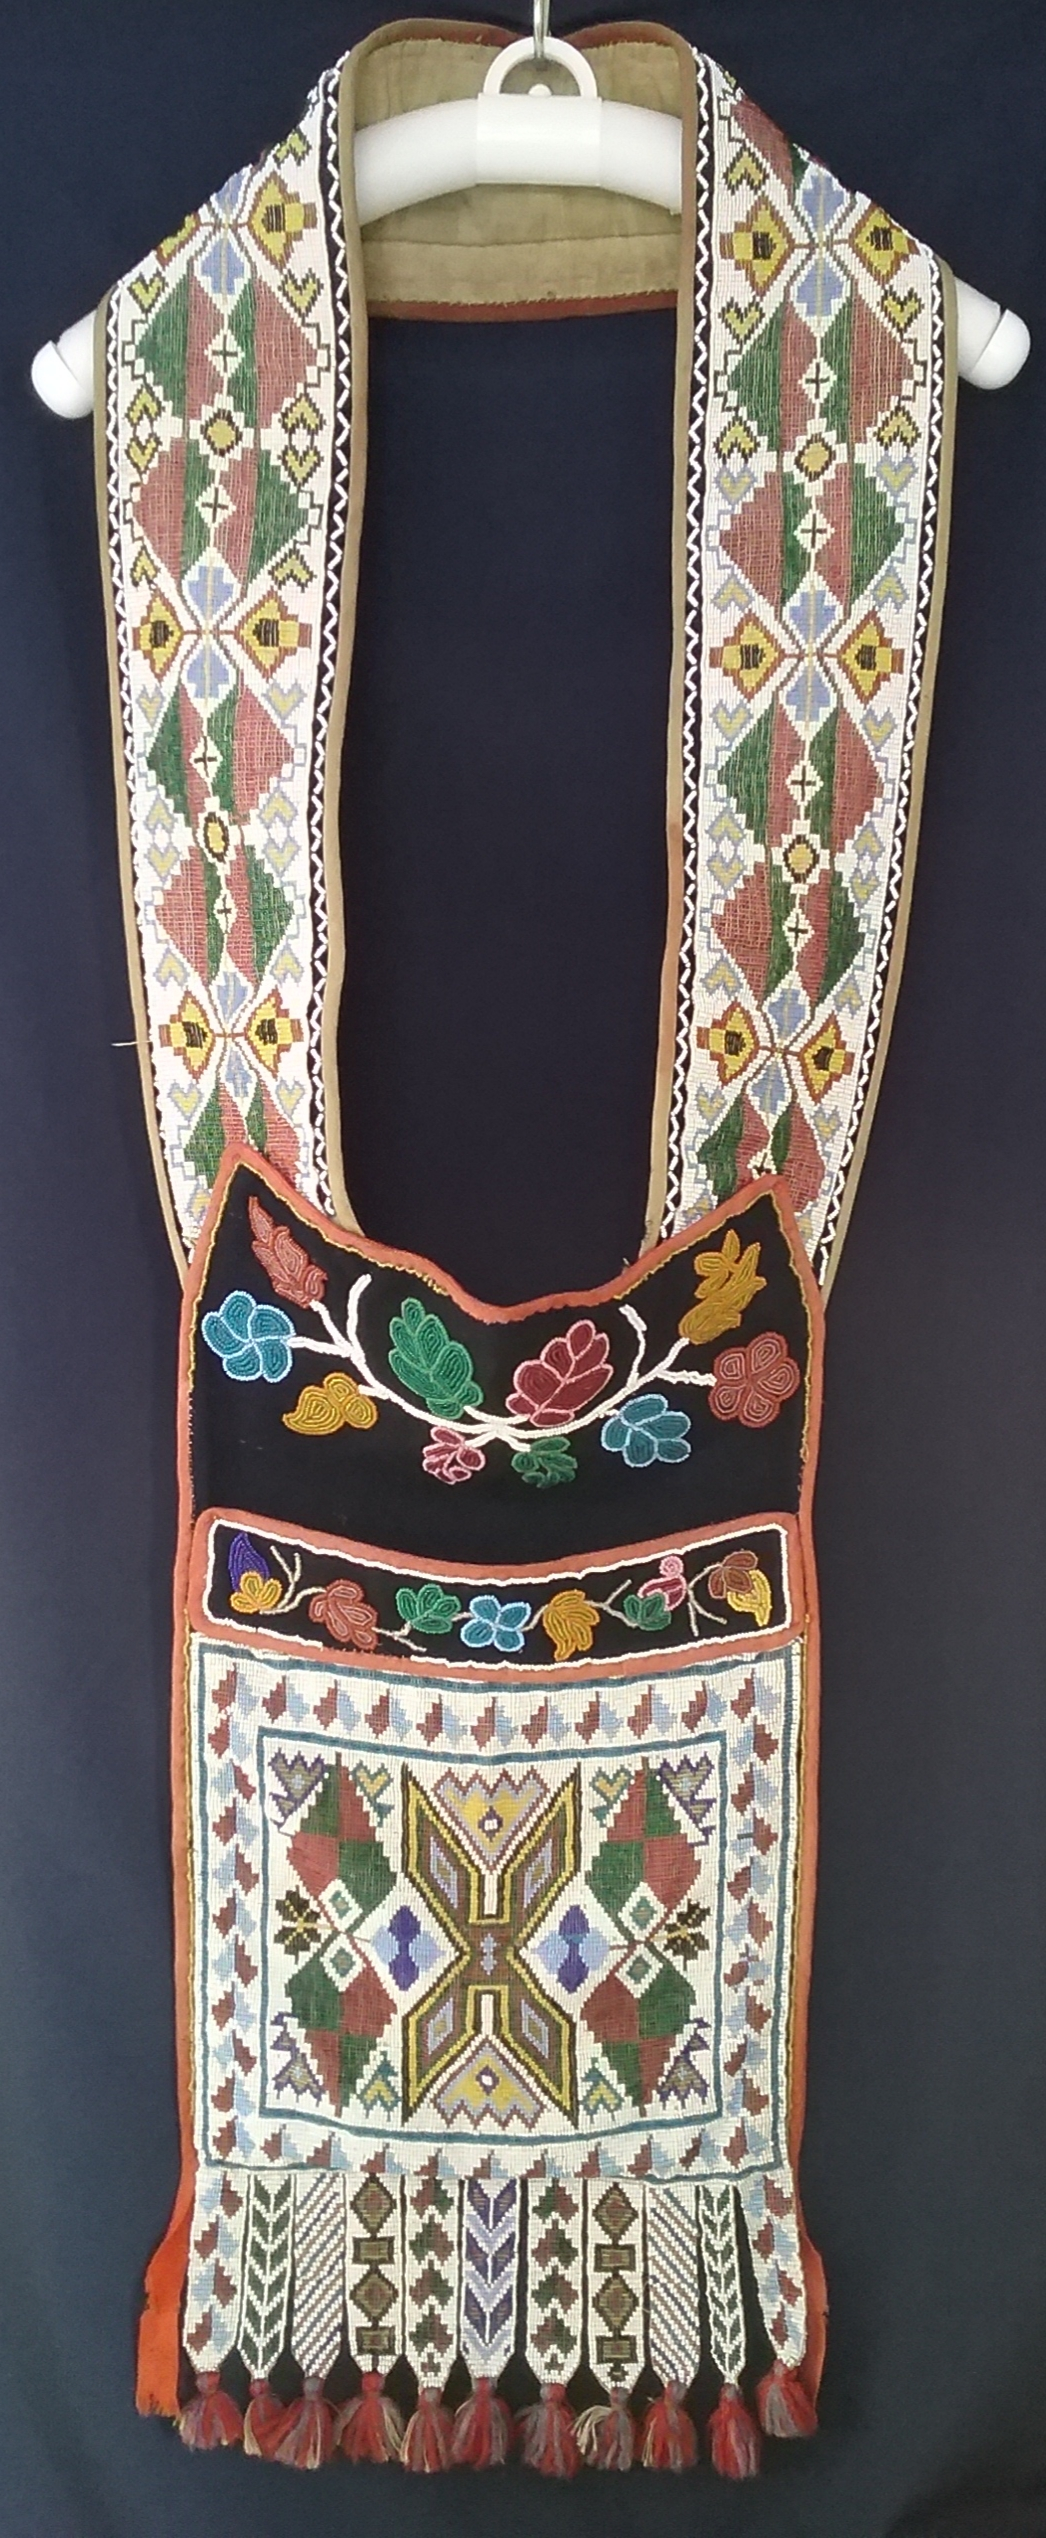 Ojibwe Gashkibidaagan Owned by Nathan Richardson: This Ojibwe gashkibidaagan (bandolier bag) was presented by Mille Lacs Band Chief She-bosh-king to Nathan Richardson (called the Father of Morrison County) in 1884 for his work in assisting the Band with legal matters. The front panel, strap, and fringe feature loom-woven beading, while the sections at the top of the pocket and above the pocket are done in spot-stitch applique. Note the symmetry within the beadwork on the strap and the large X in the center of the pocket. The X was a common motif for Ojibwe loom-woven gashkibidaaganag. MCHS collections, #1940.42.1.